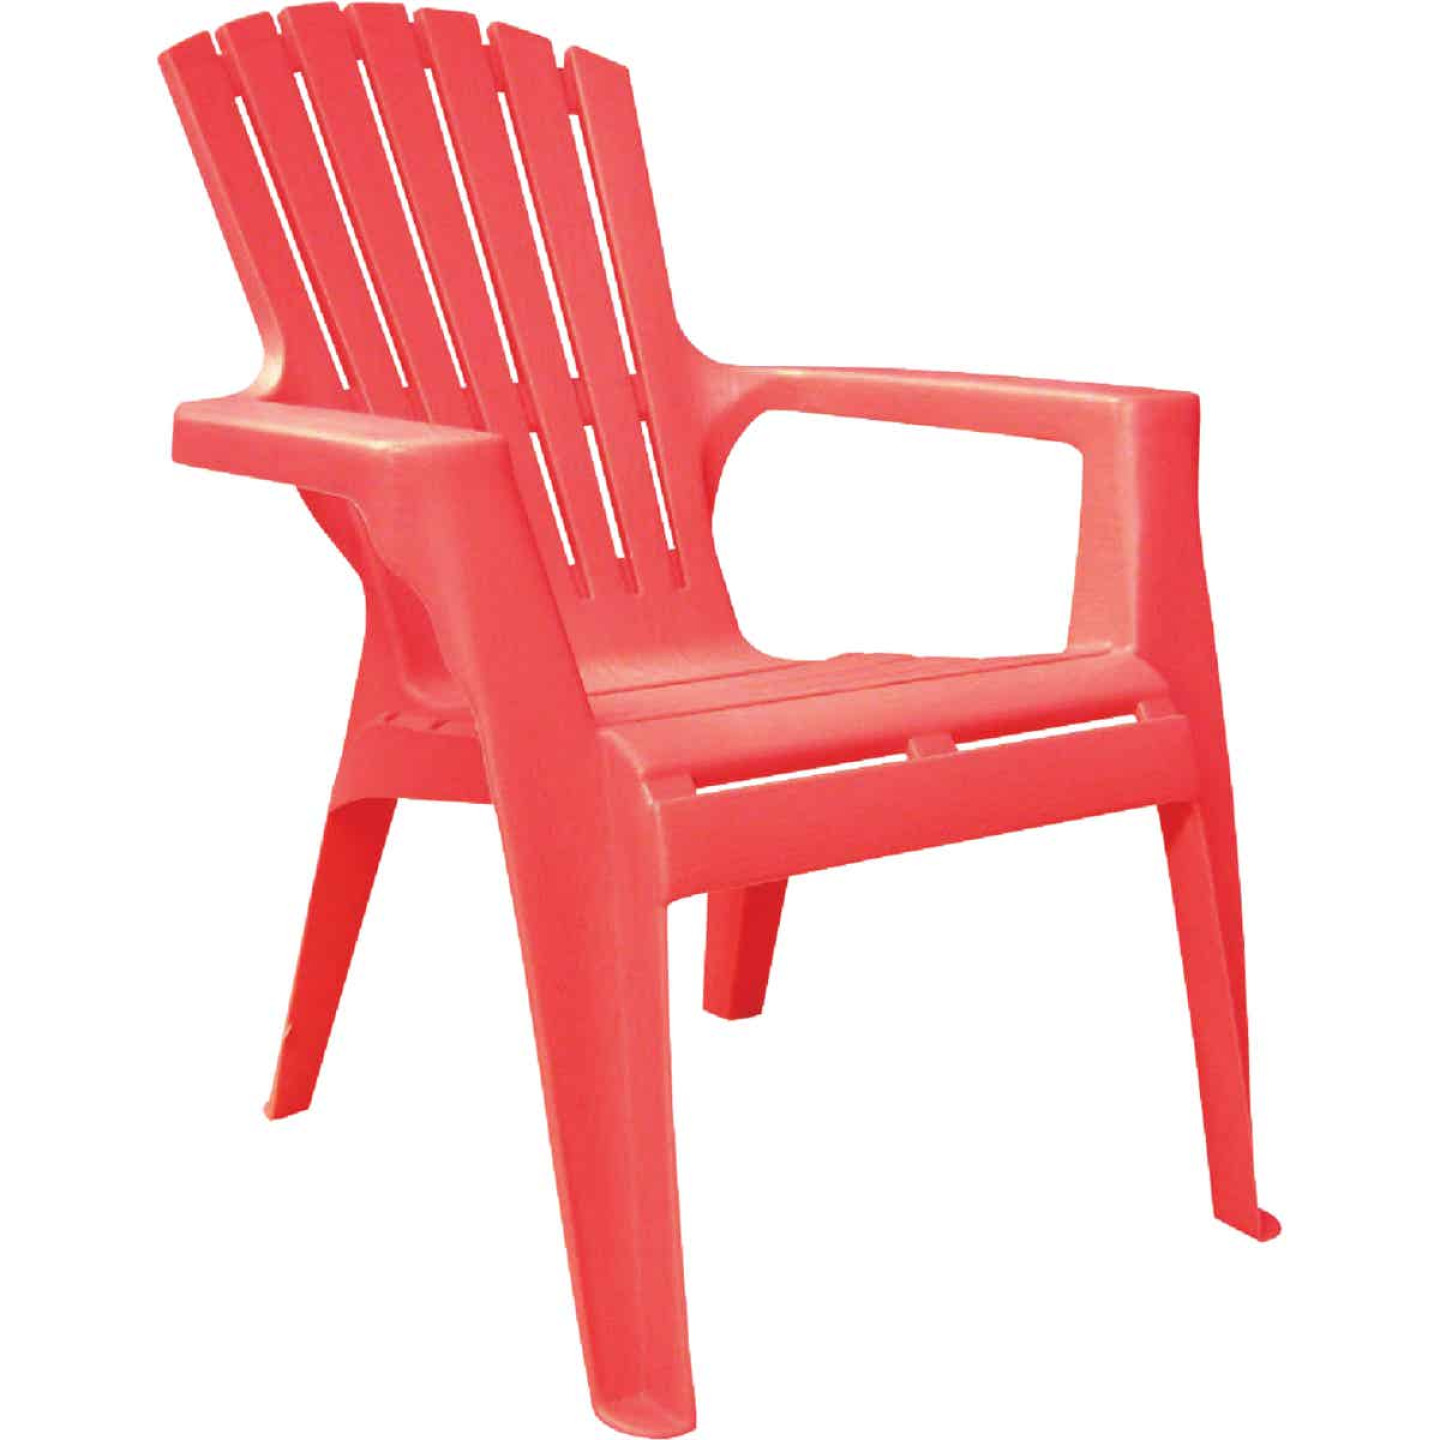 Adams Kids Red Resin Adirondack Chair Image 1